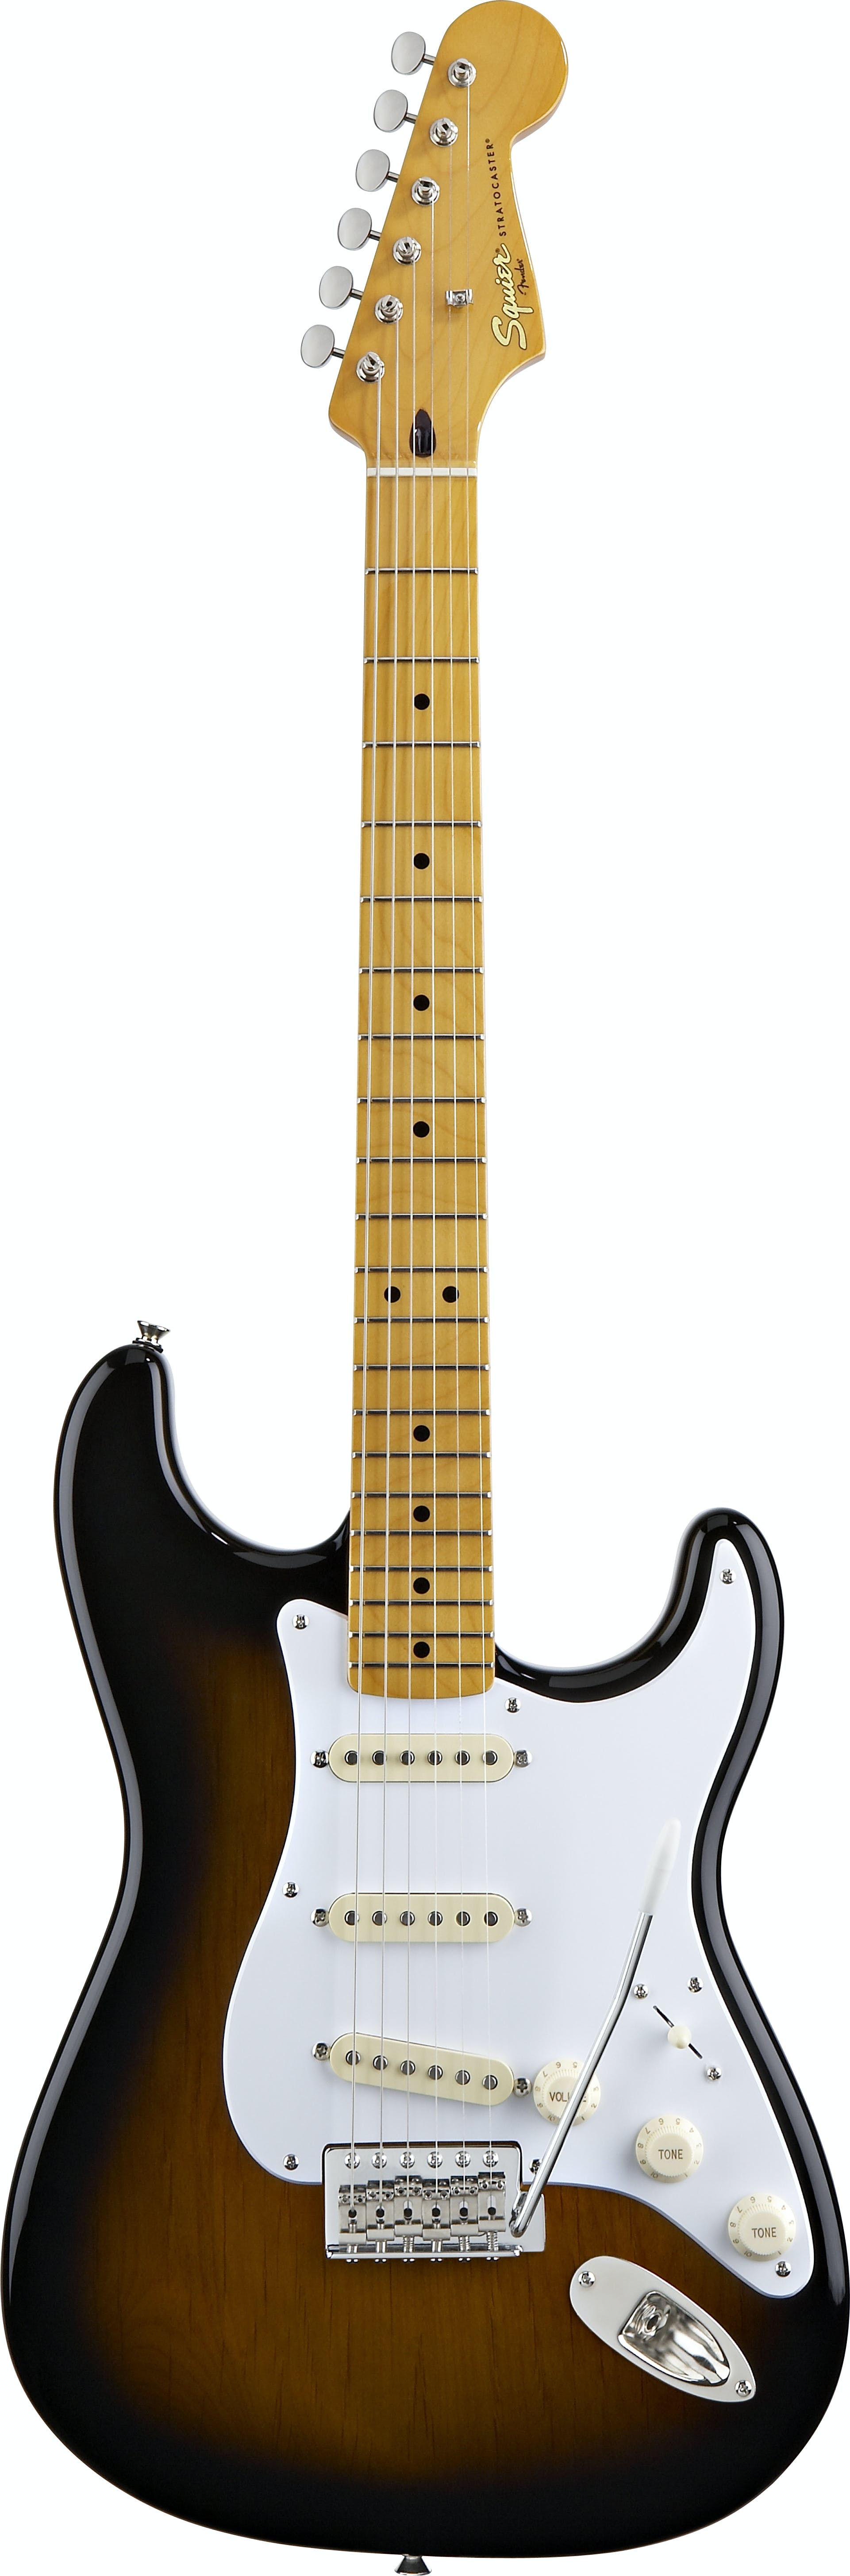 Squier classic vibe dating